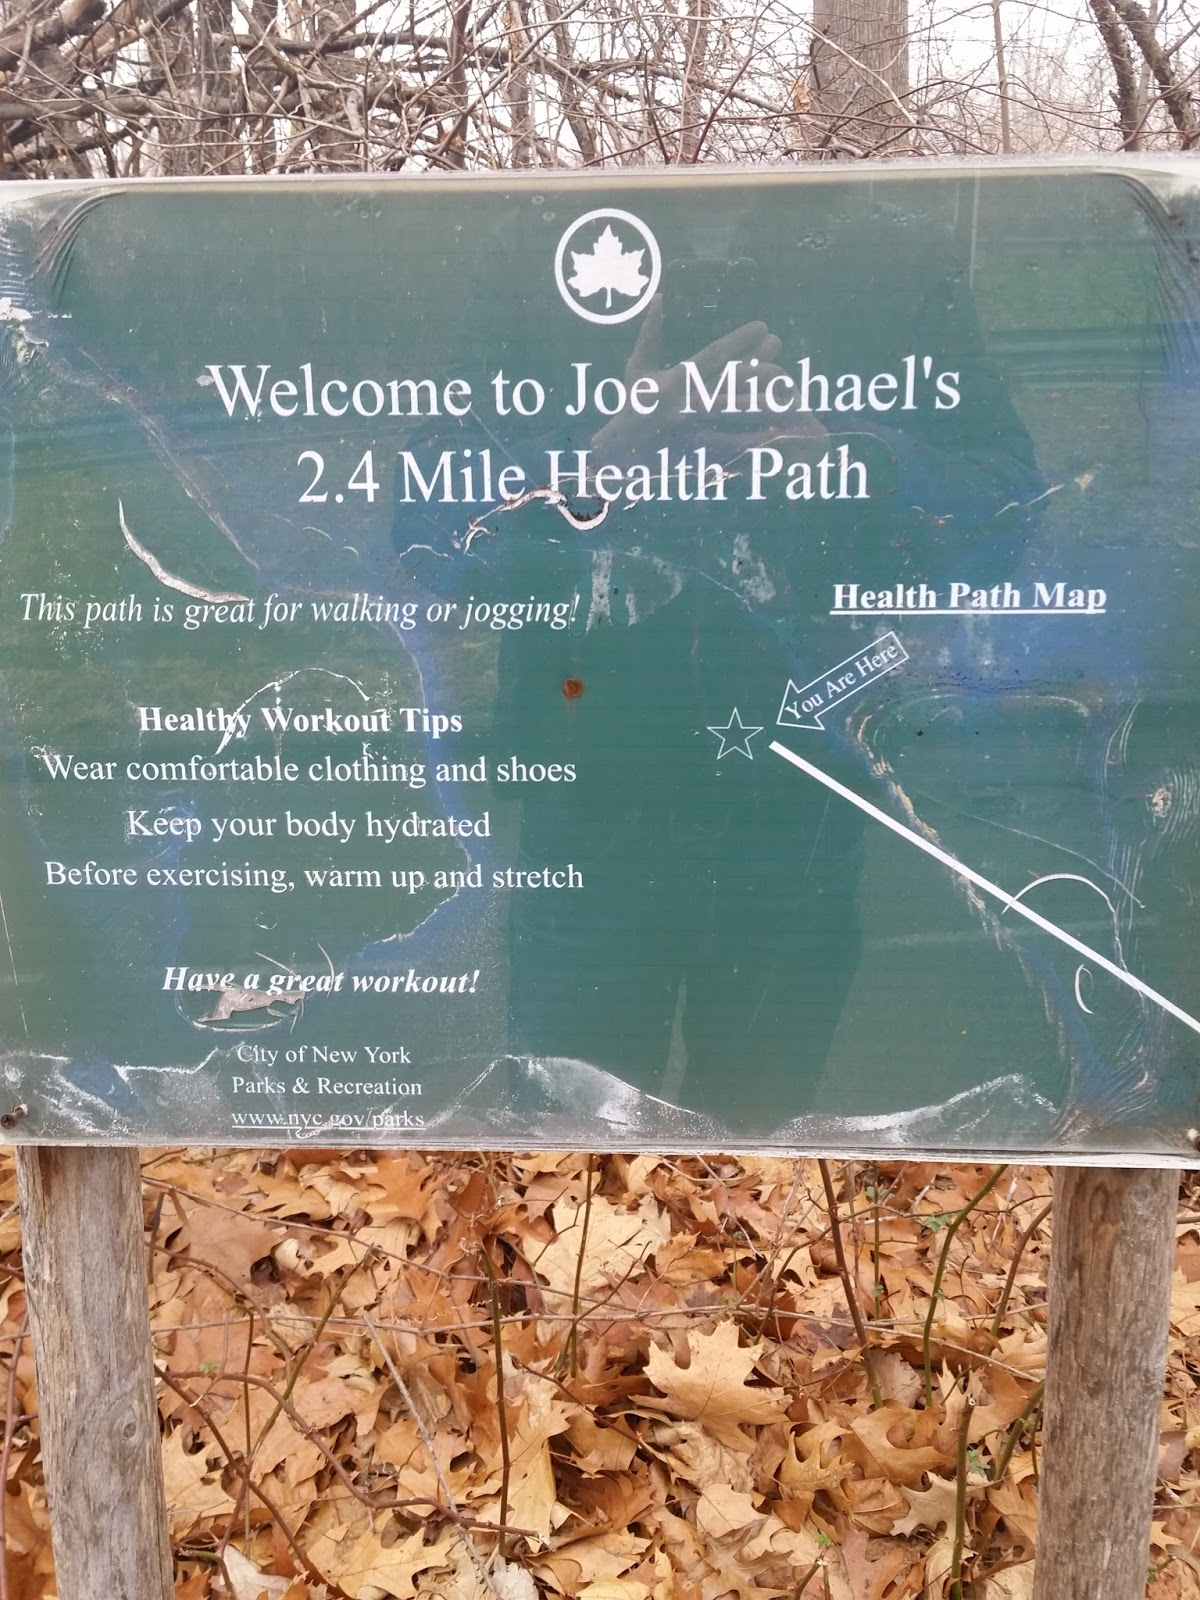 a sign along the path